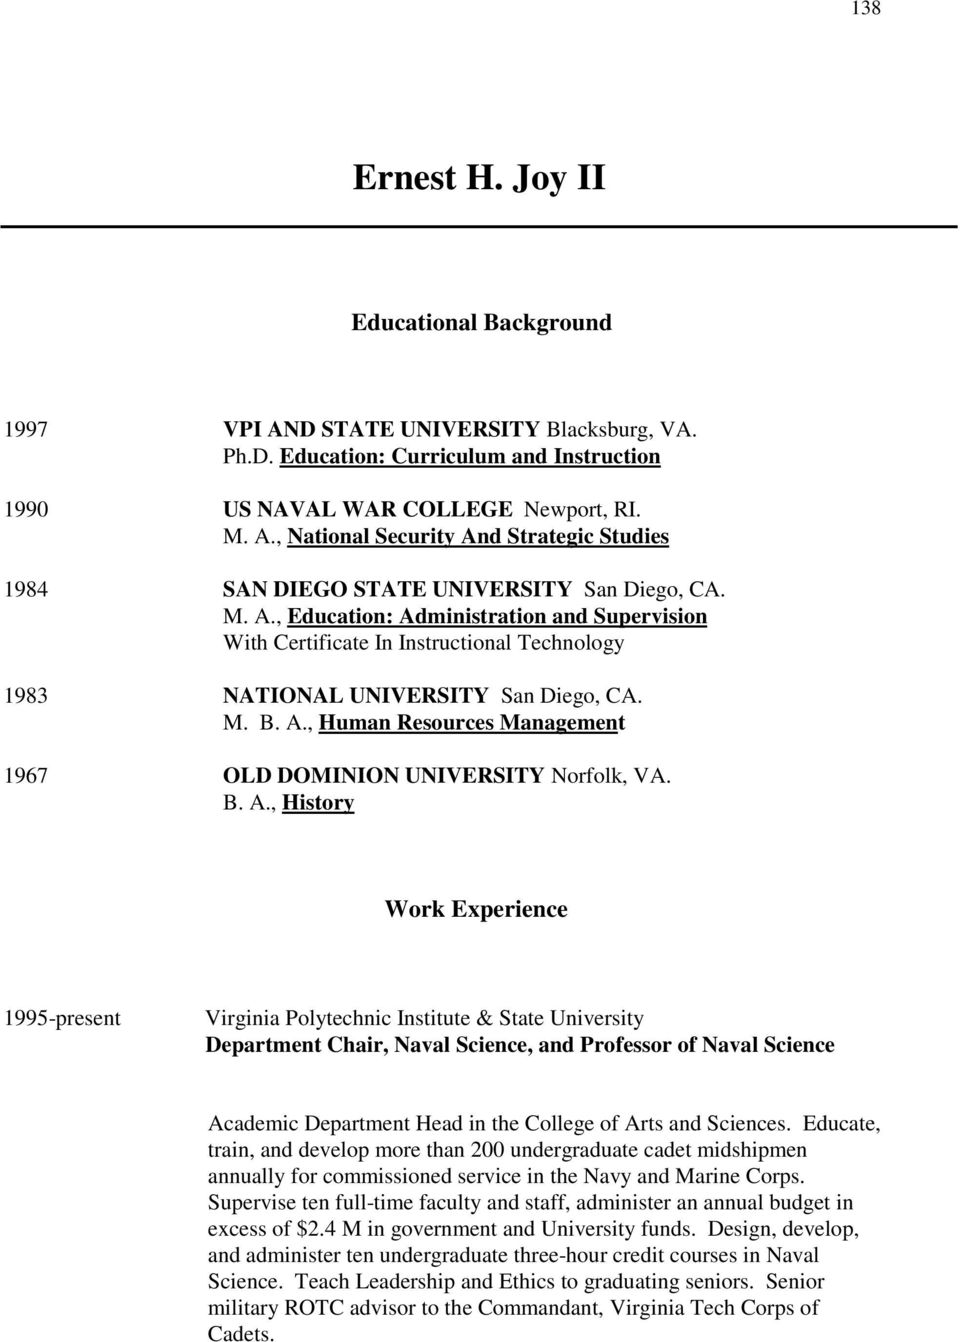 B. A., History Work Experience 1995-present Virginia Polytechnic Institute & State University Department Chair, Naval Science, and Professor of Naval Science Academic Department Head in the College